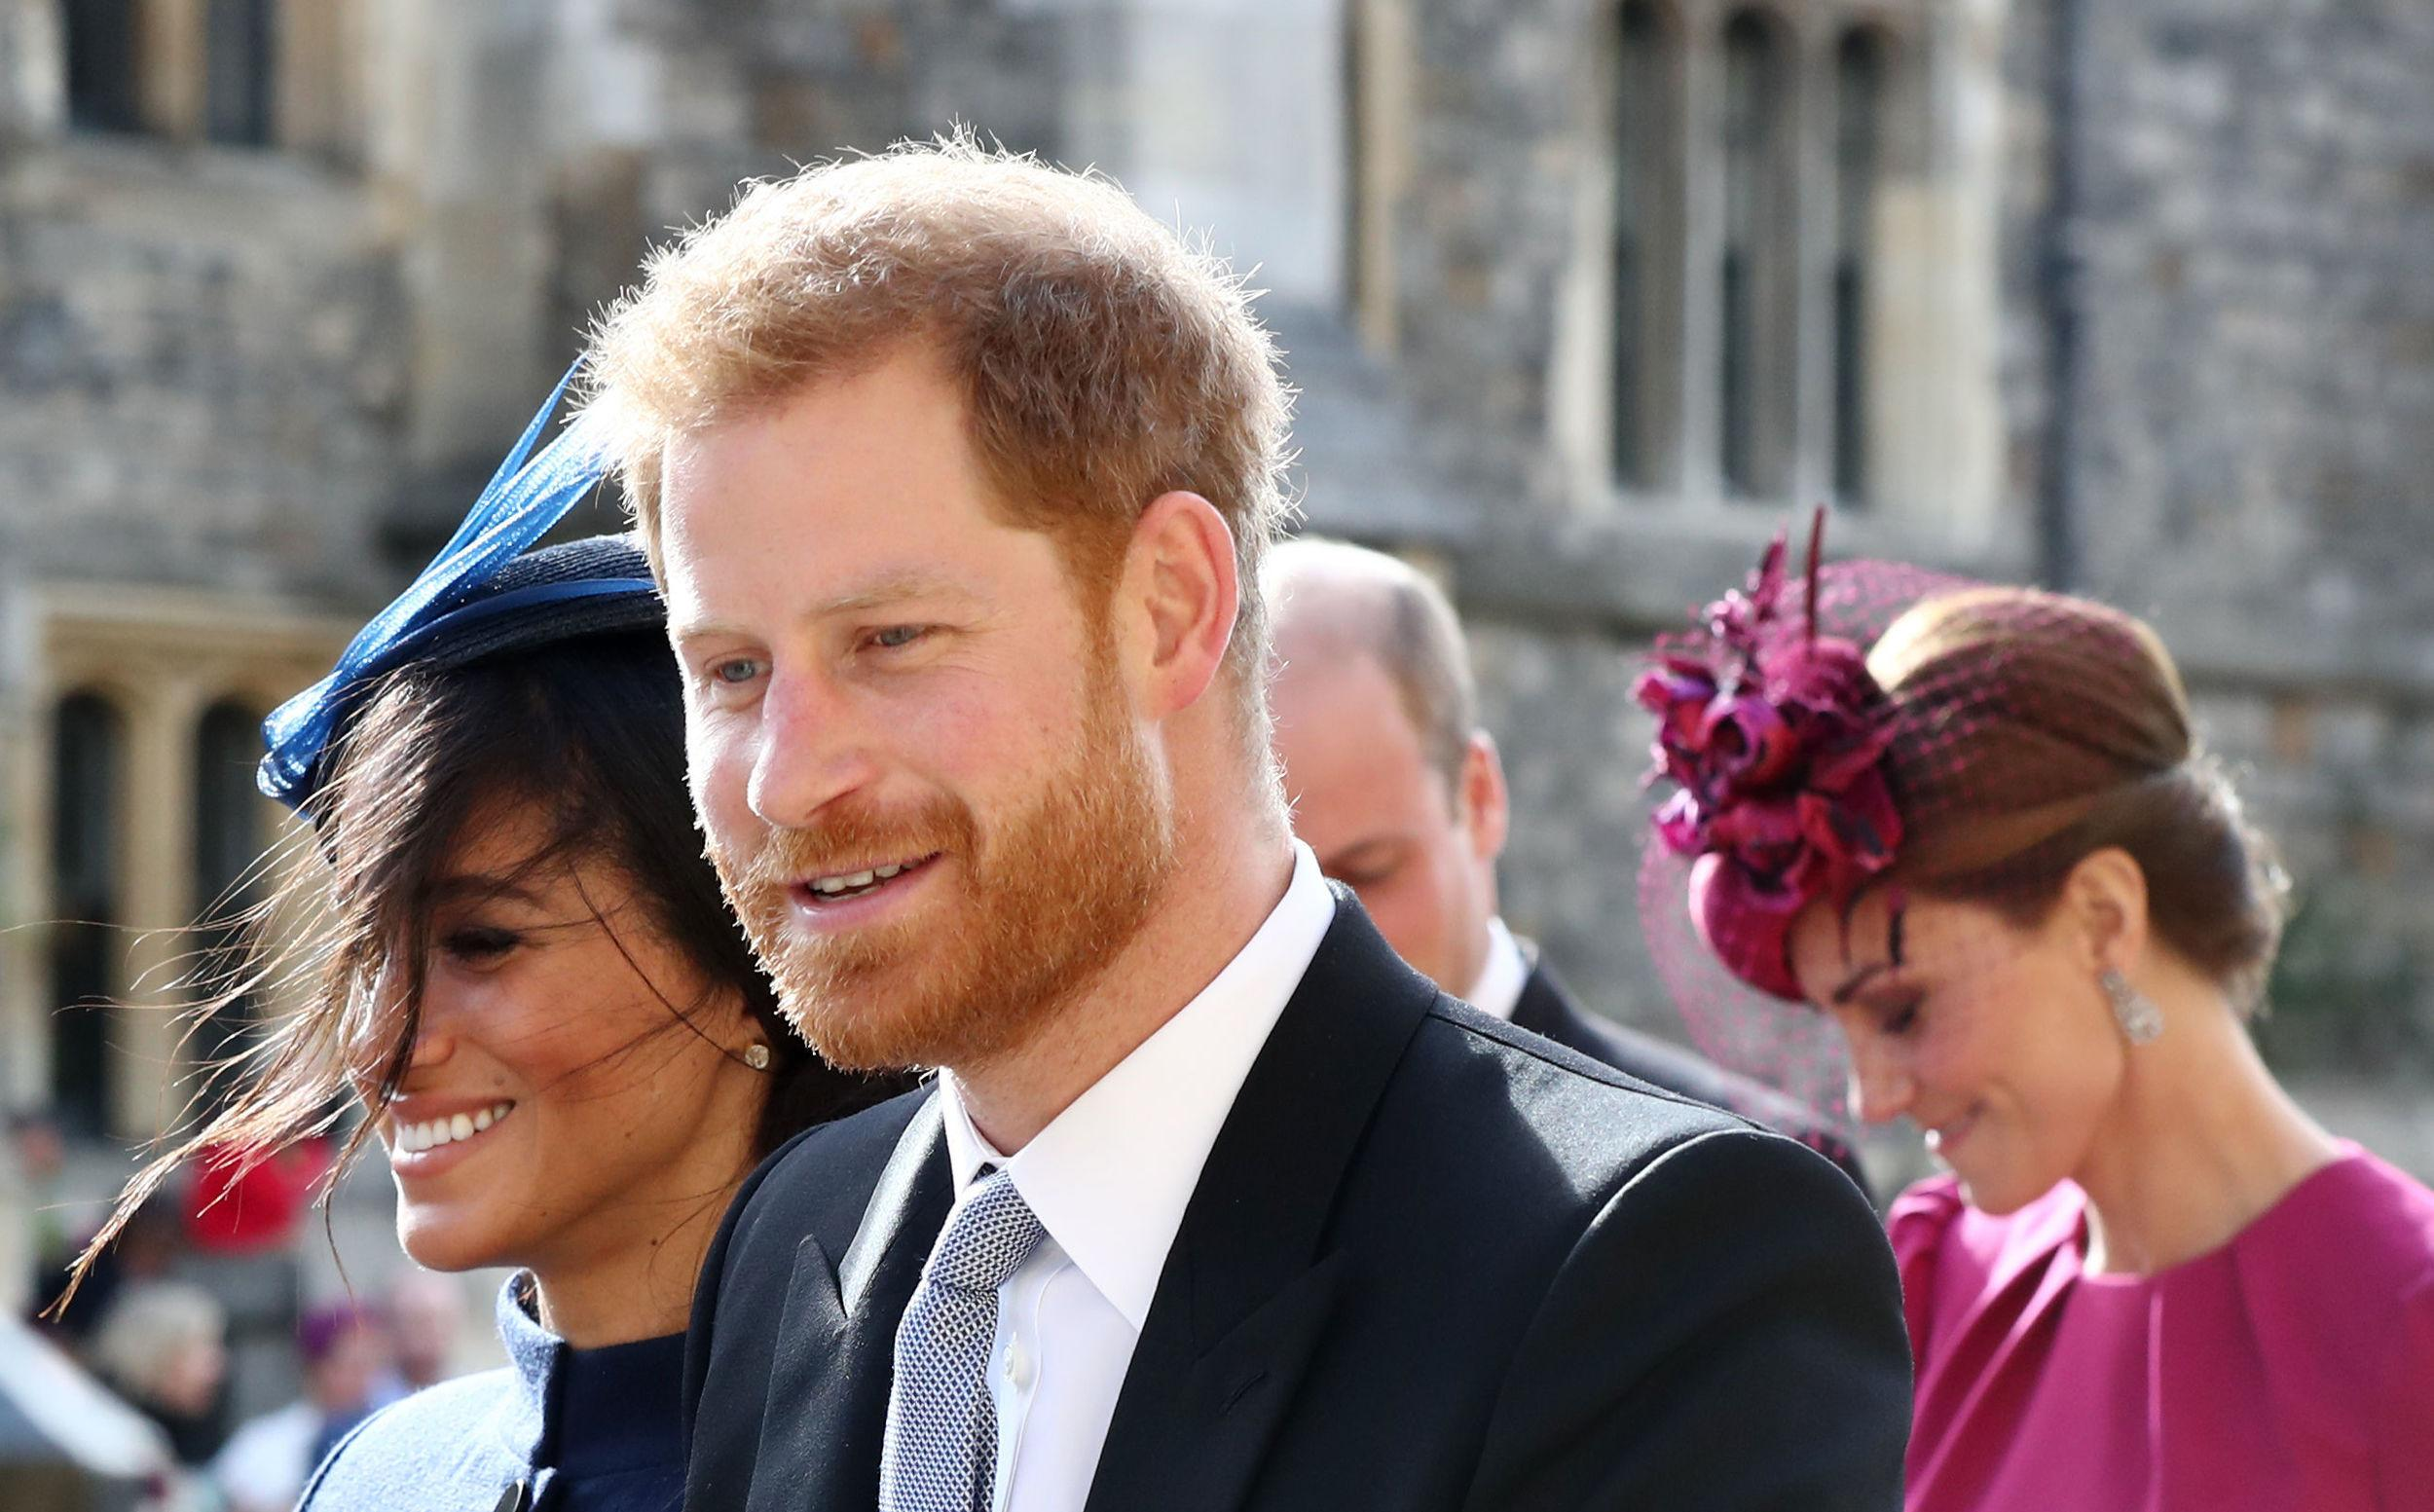 Britain's Prince Harry, Duke of Sussex, (C) and Britain's Meghan, Duchess of Sussex (L) leave with Britain's Catherine, Duchess of Cambridge, (R) and Britain's Prince William, Duke of Cambridge, (2R) after attending the wedding of Britain's Princess Eugenie of York and Jack Brooksbank at St George's Chapel, Windsor Castle, in Windsor, on October 12, 2018. (Photo by Gareth Fuller / POOL / AFP)        (Photo credit should read GARETH FULLER/AFP/Getty Images)